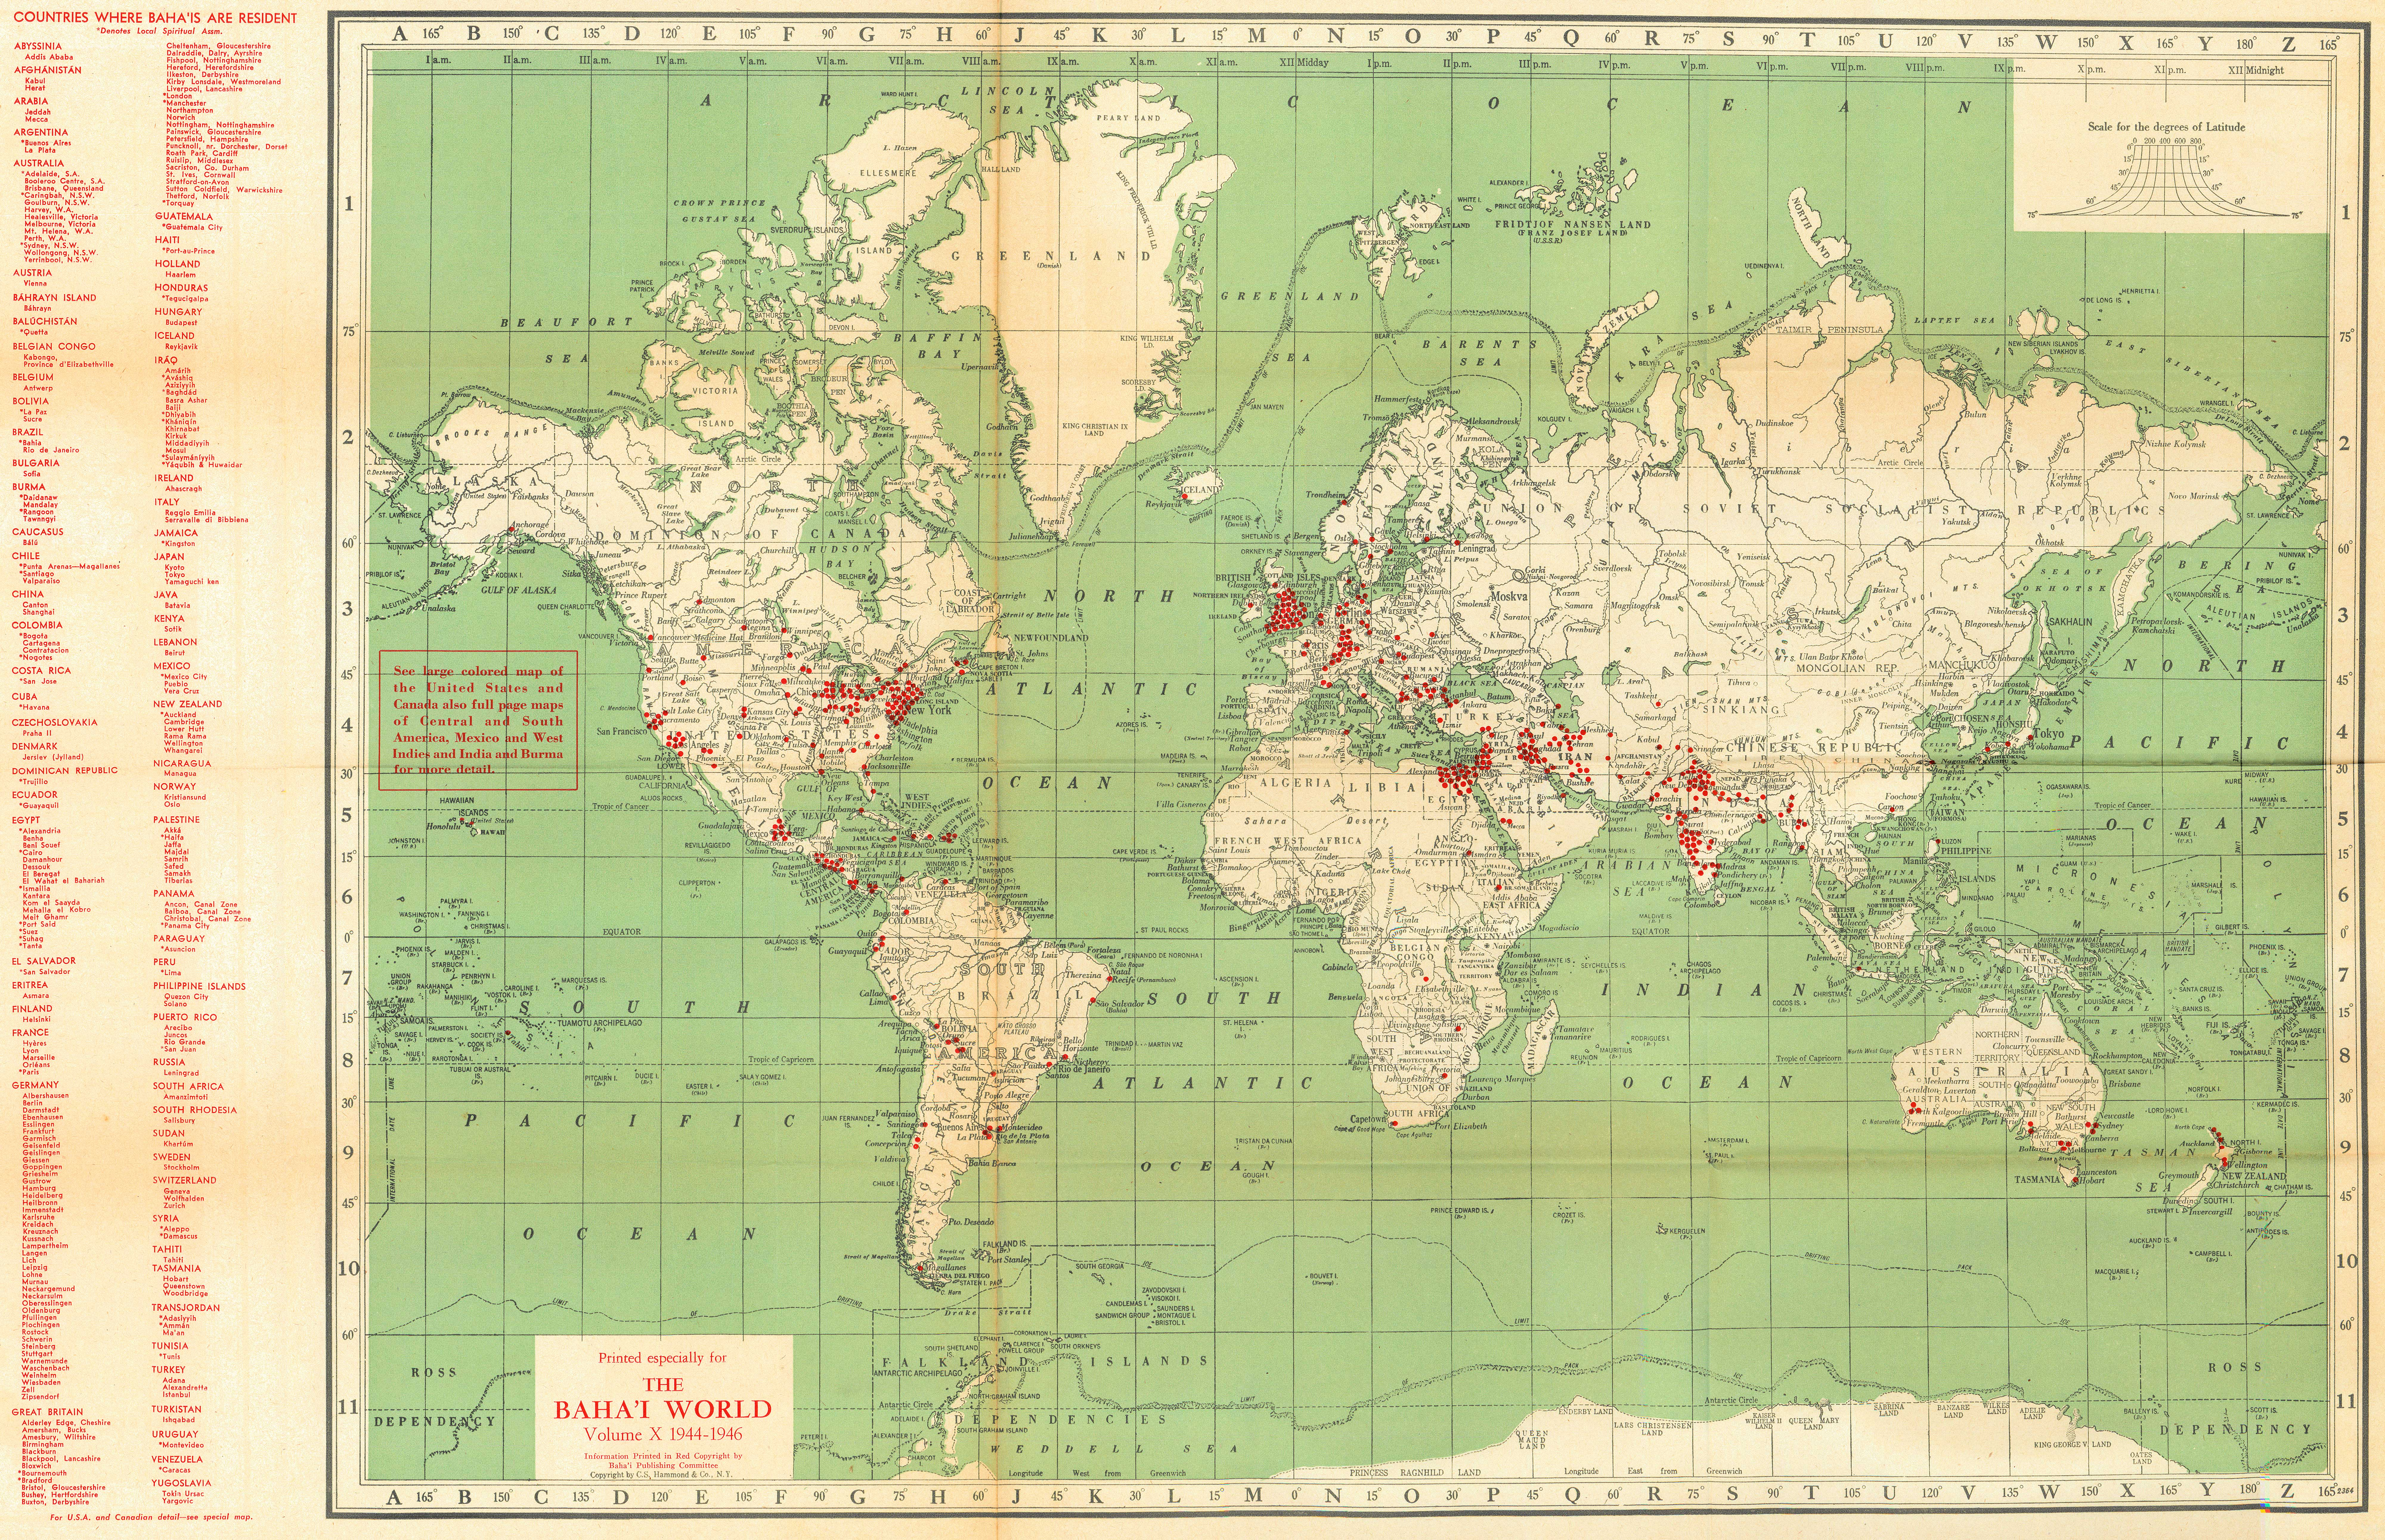 Localities where Bah 39 s live world 1944